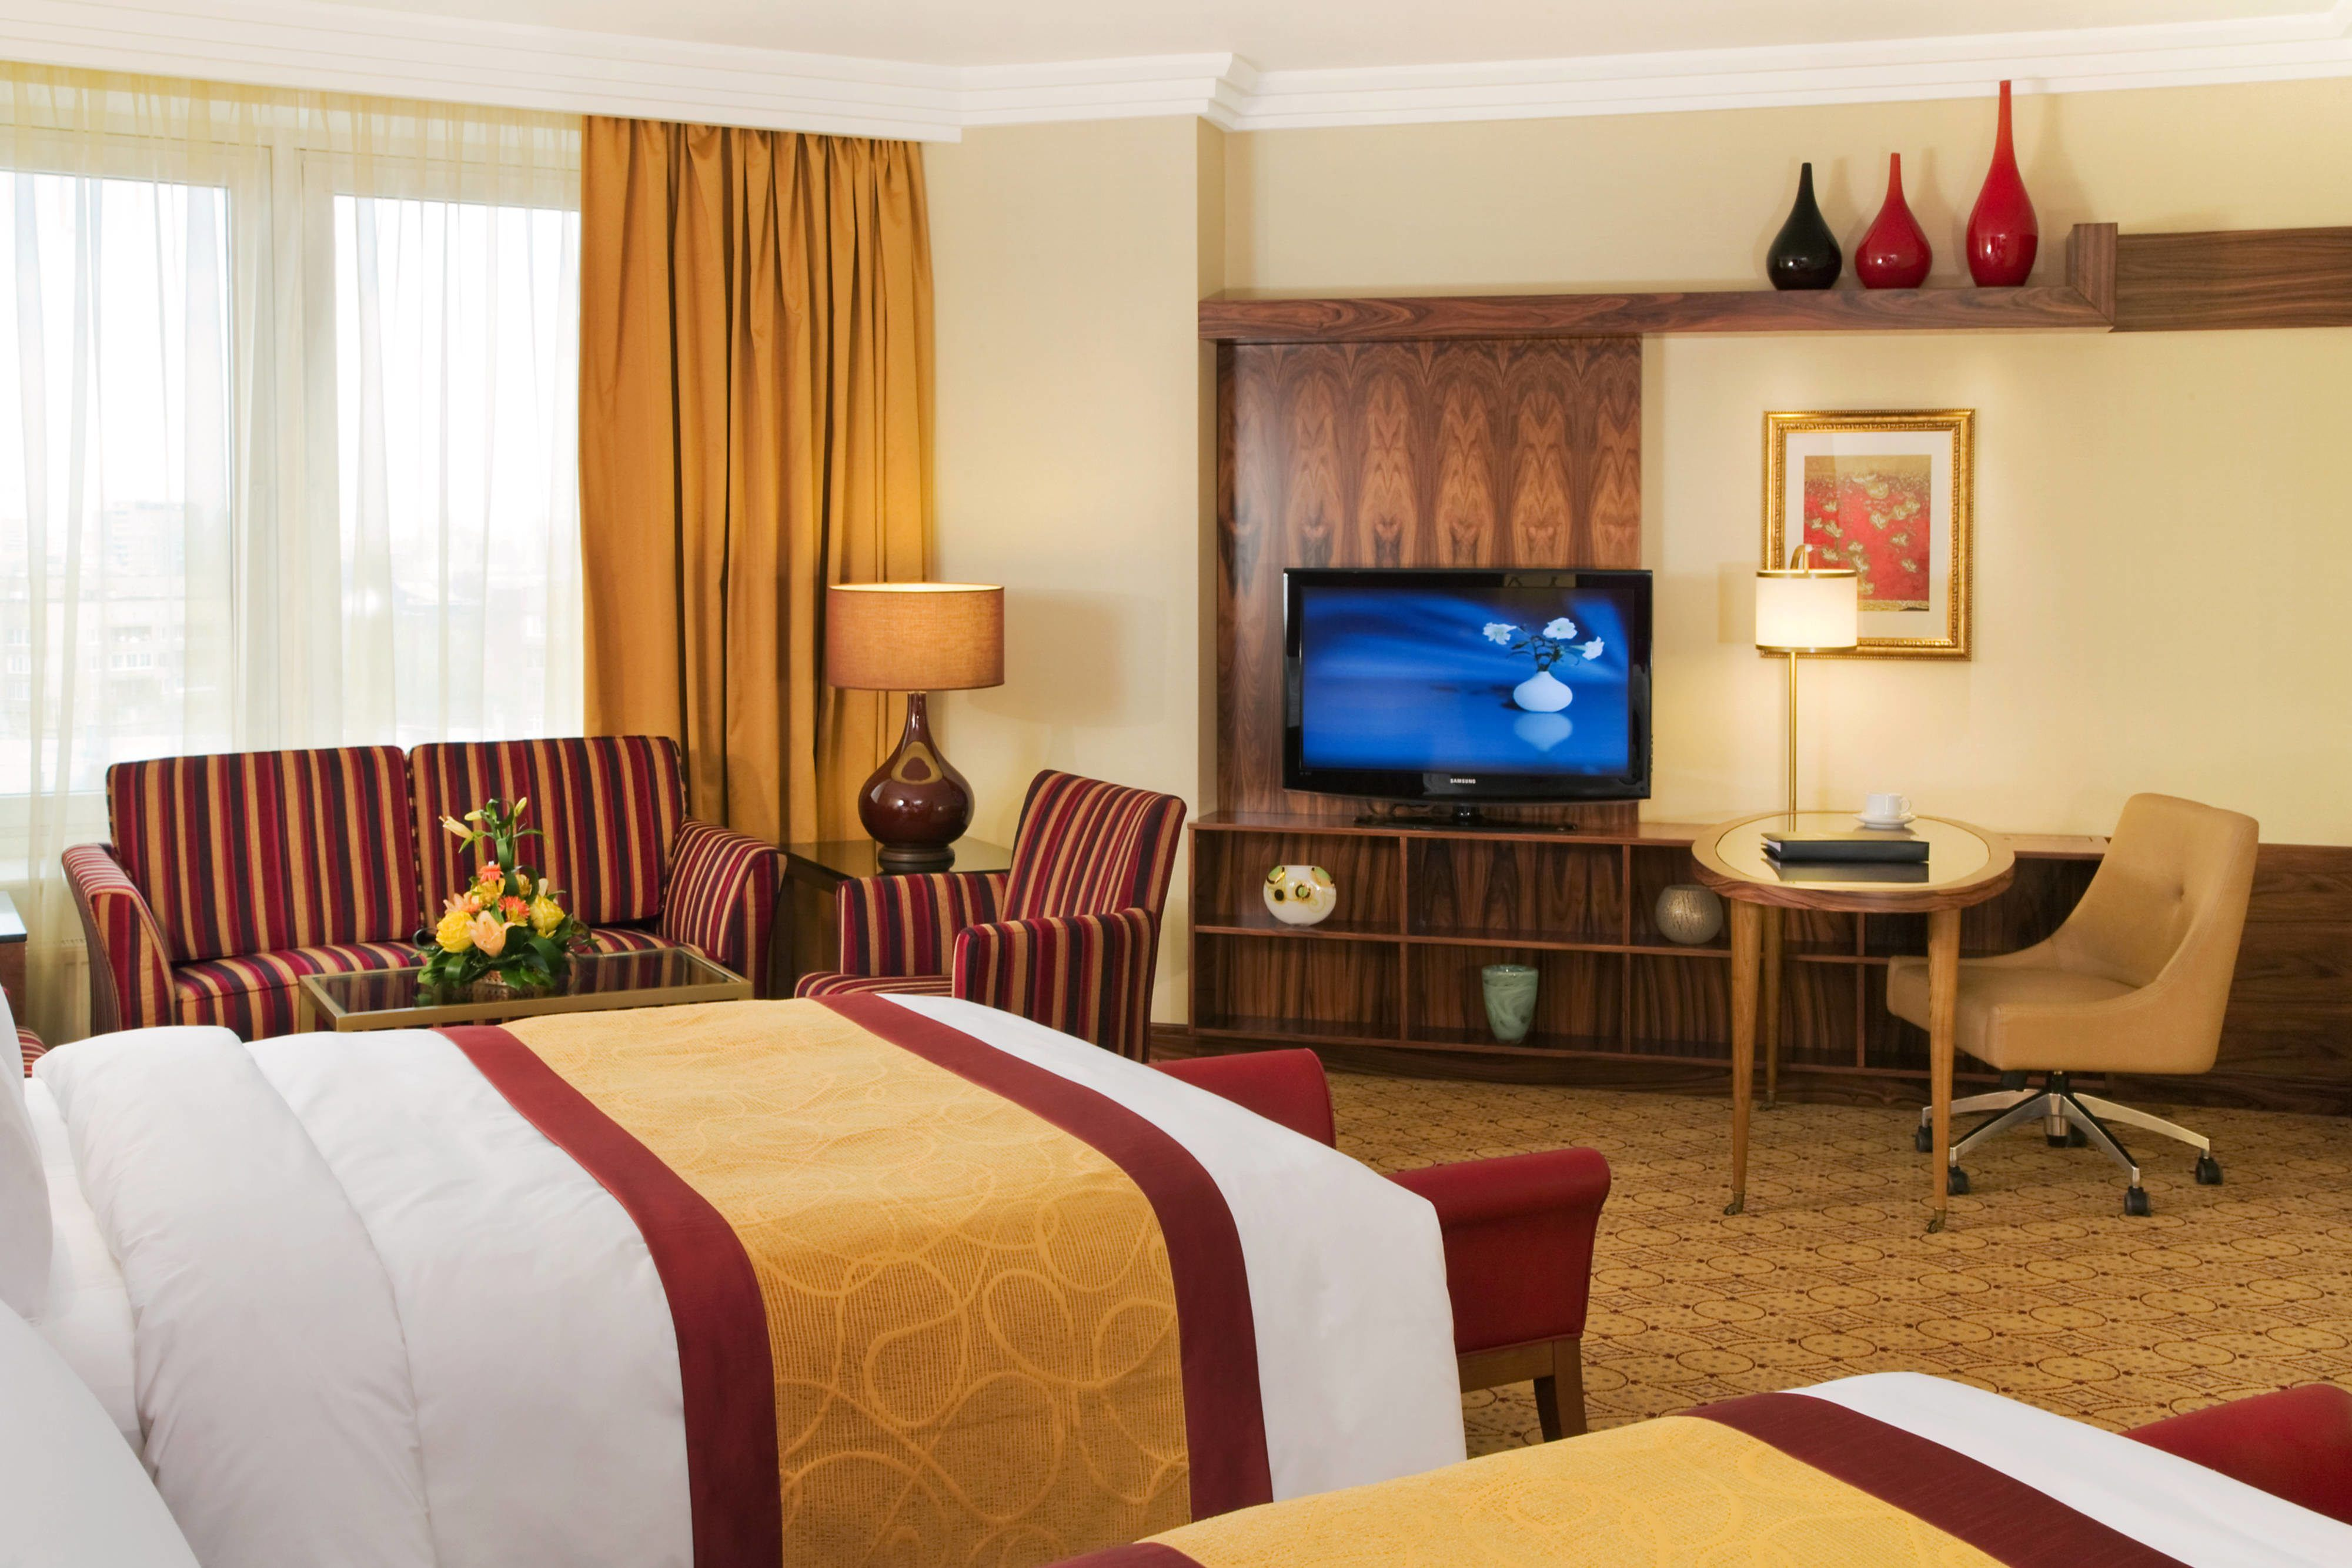 Hotel Room Germs Abound on TV Remotes, Light Switches